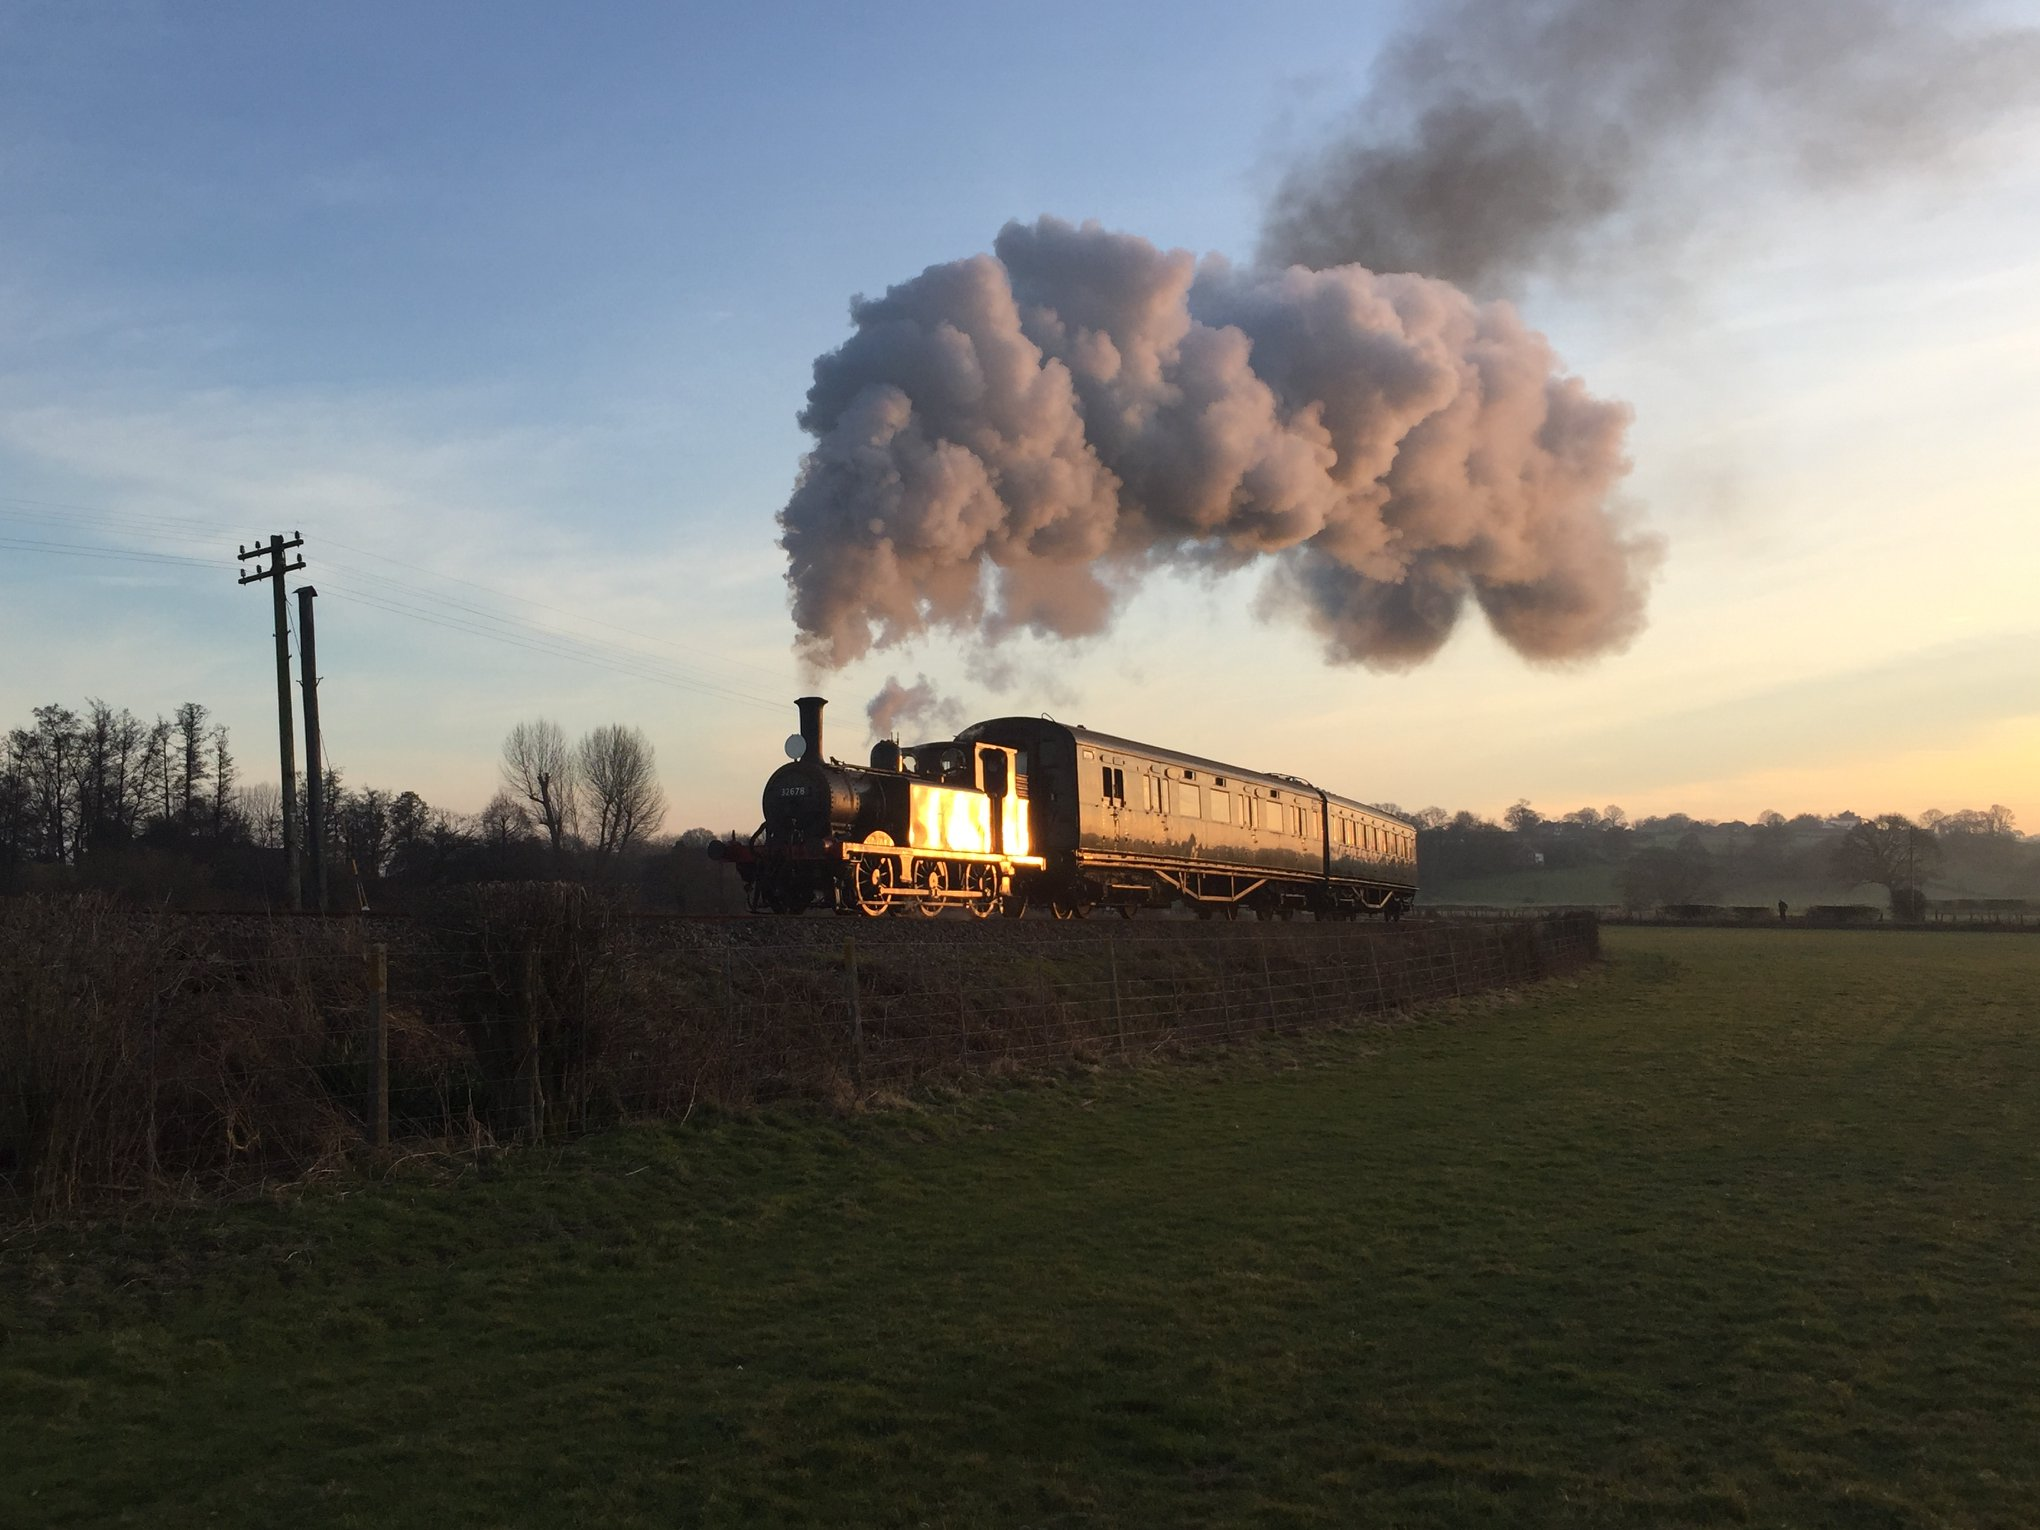 32678 photo charter Orpins sunset 22 Feb 19 Andrew Hardy